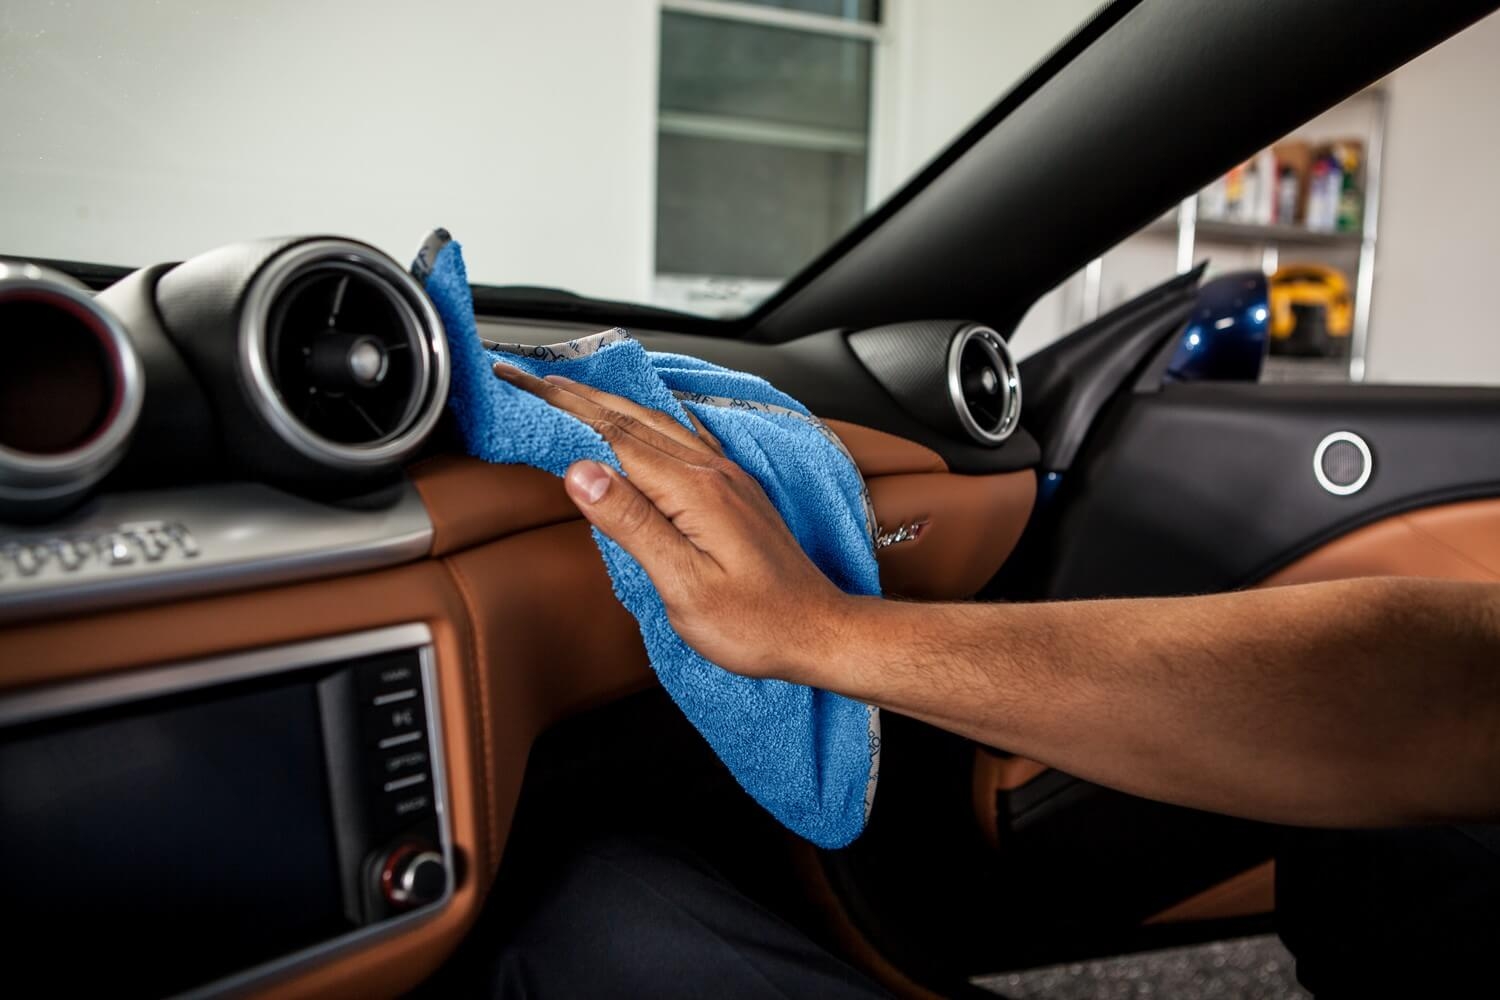 best microfiber towel for car detailing interior dashboards leather